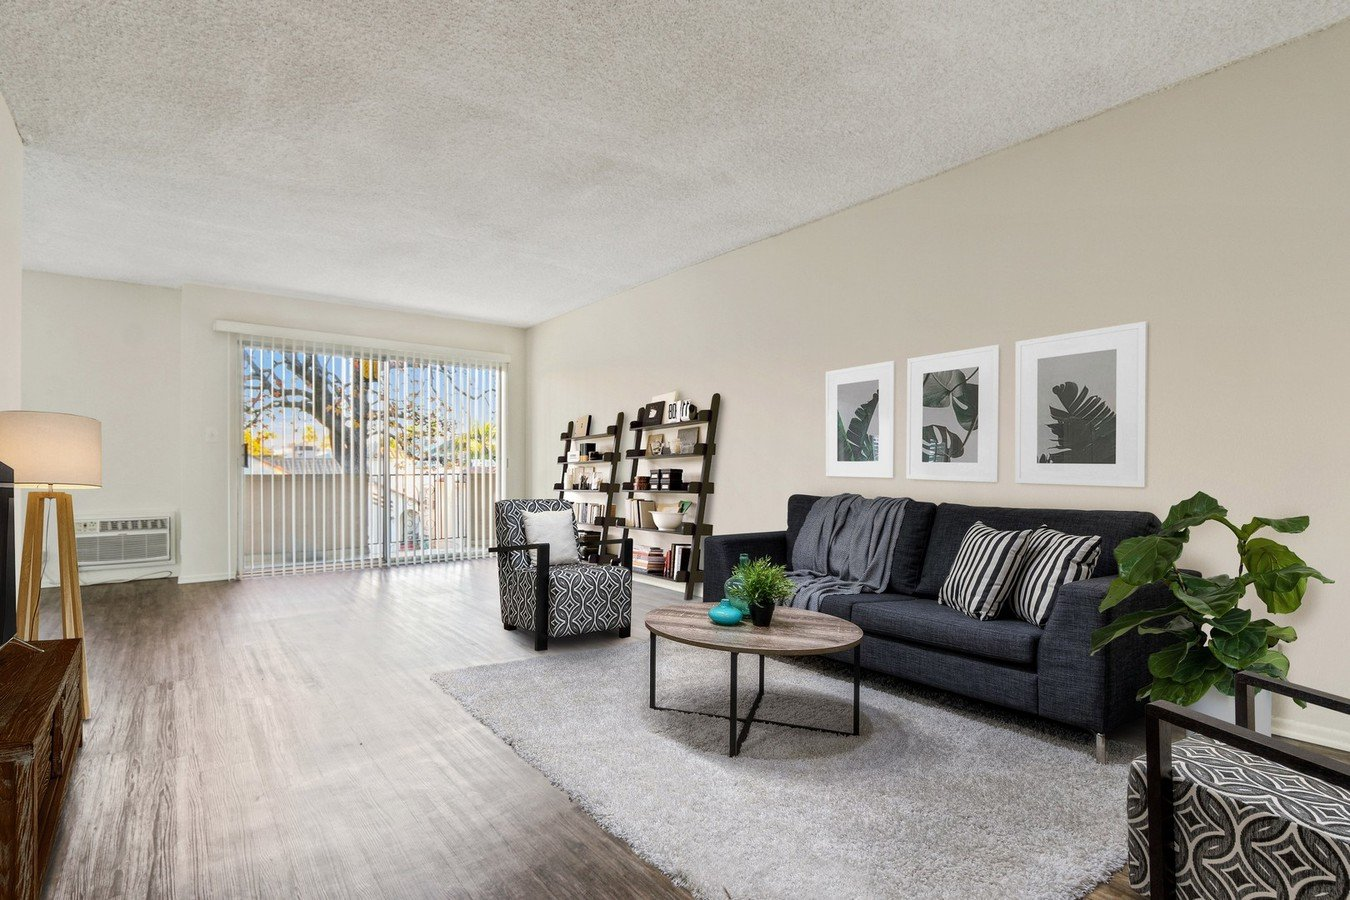 1 Bedroom 1 Bathroom Apartment for rent at Wooster in Los Angeles, CA